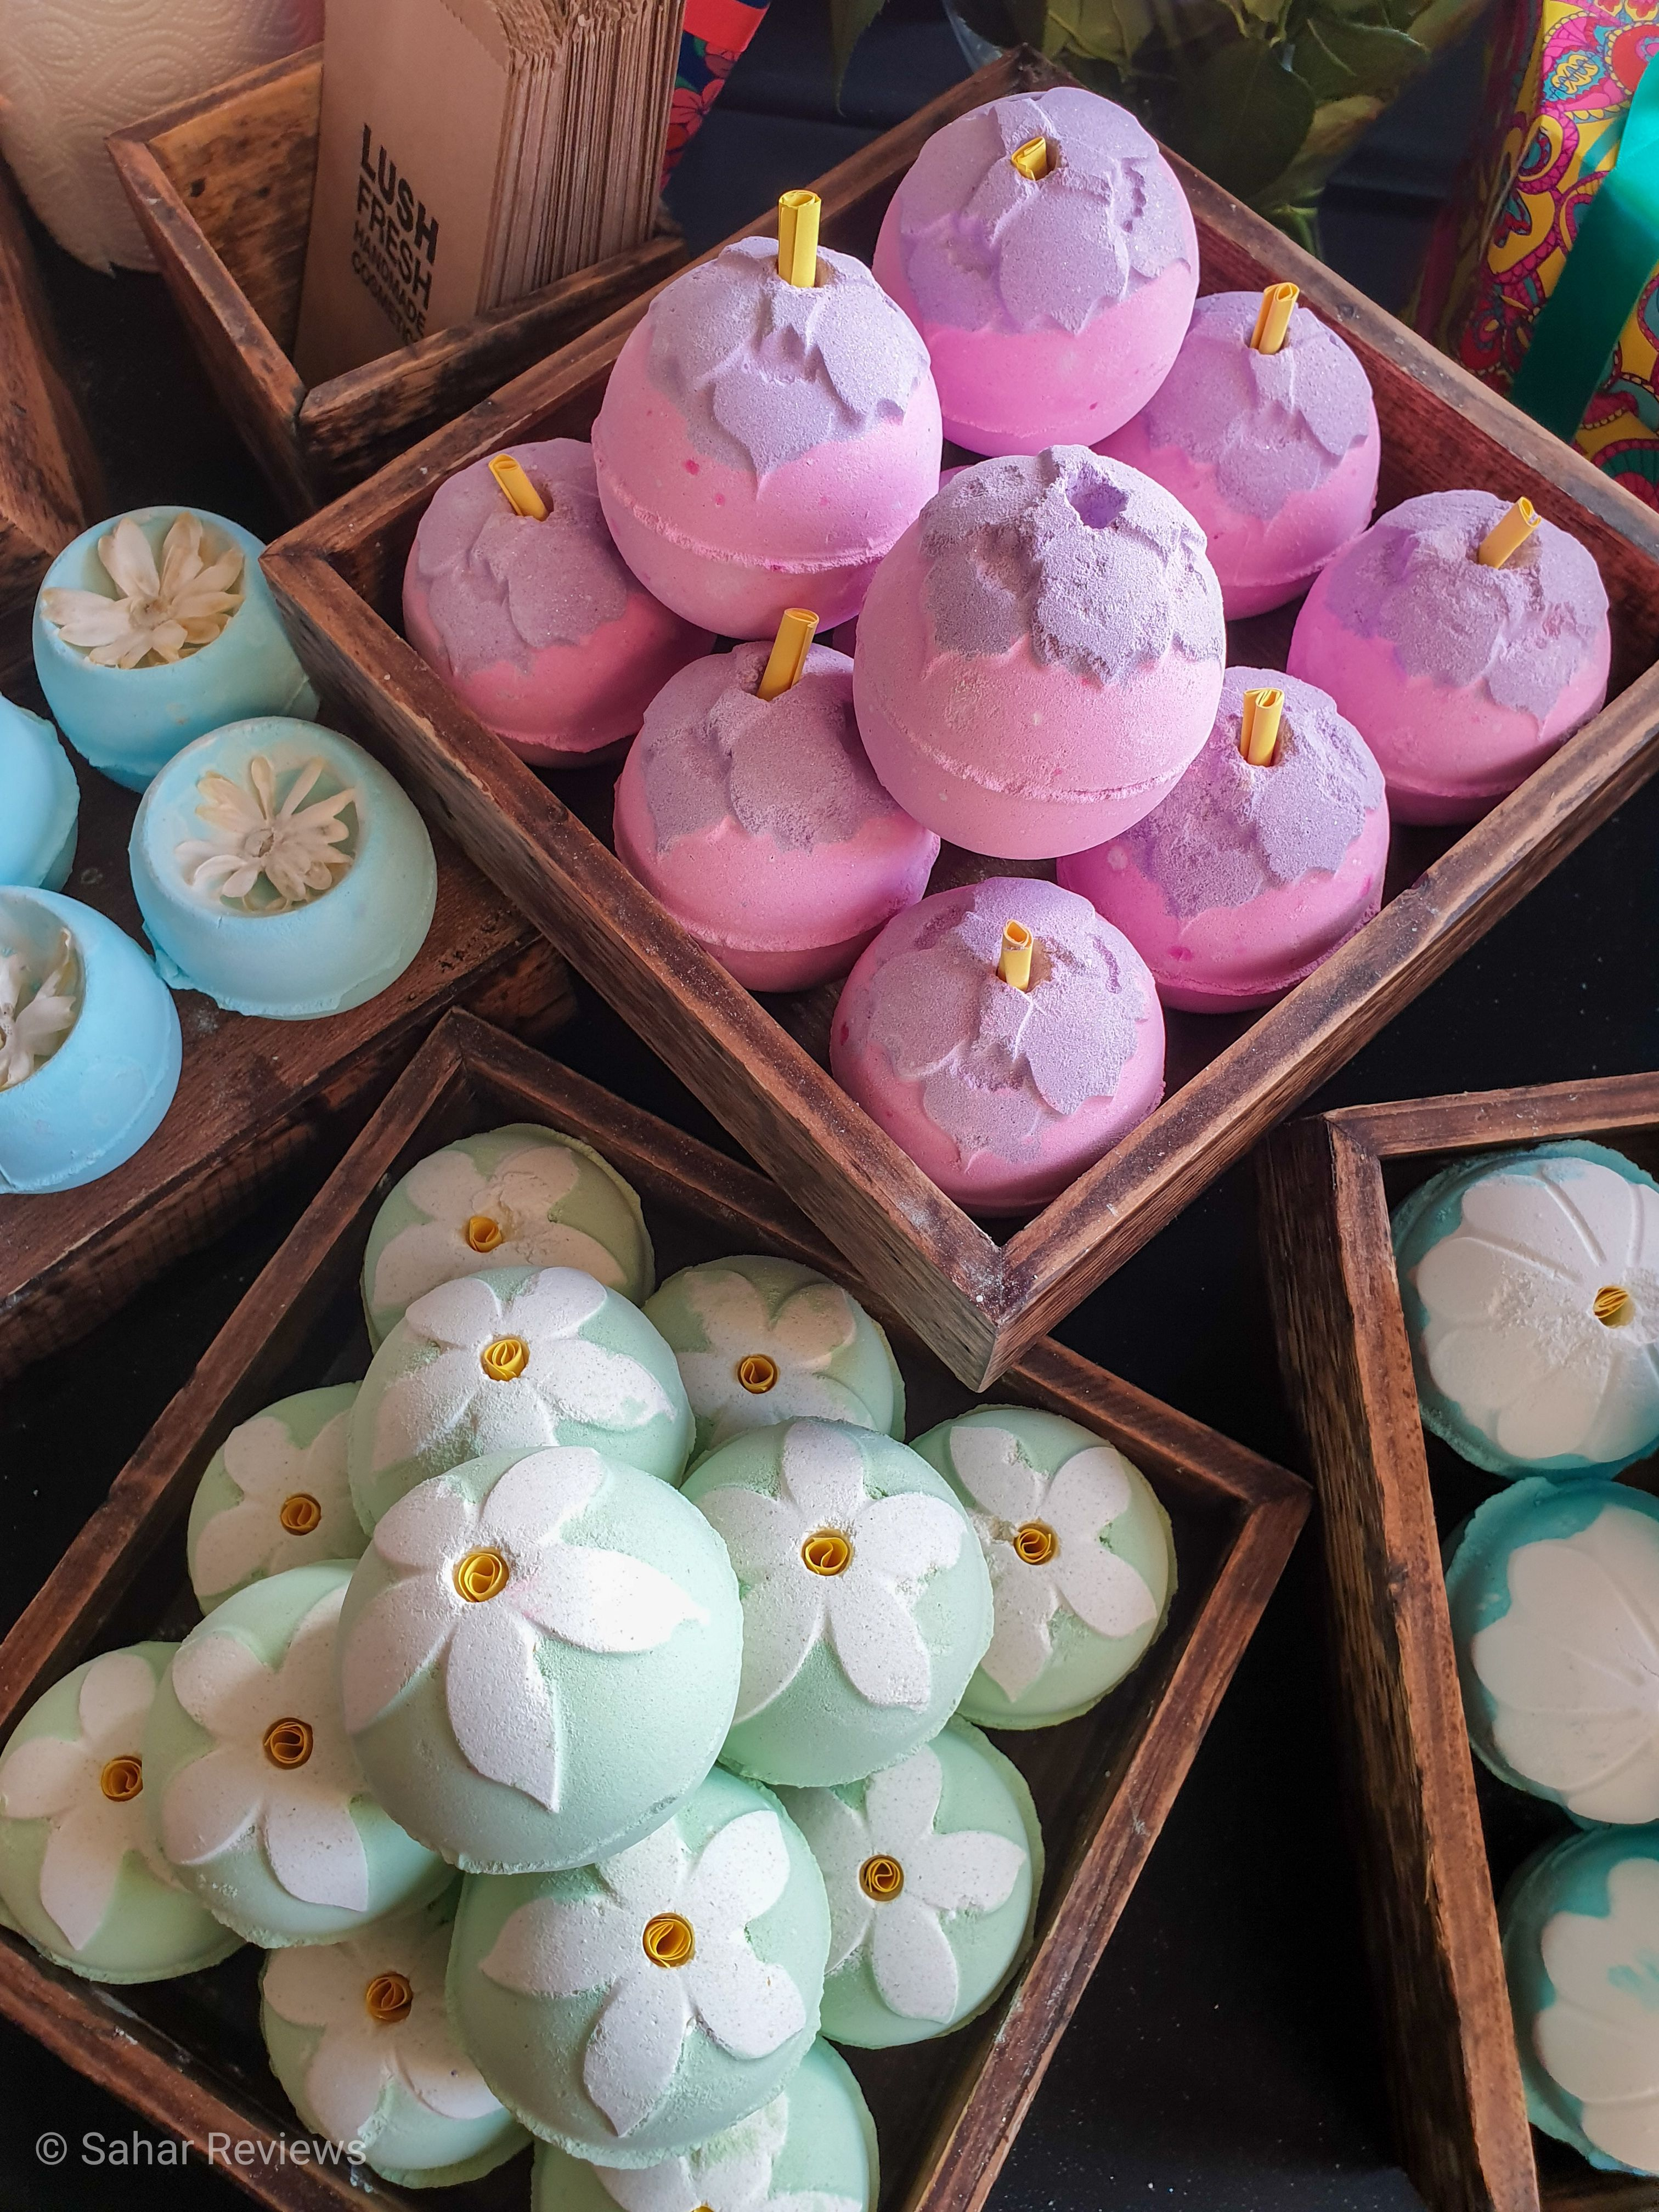 Lush Bath Bombs Mother's Day 2019